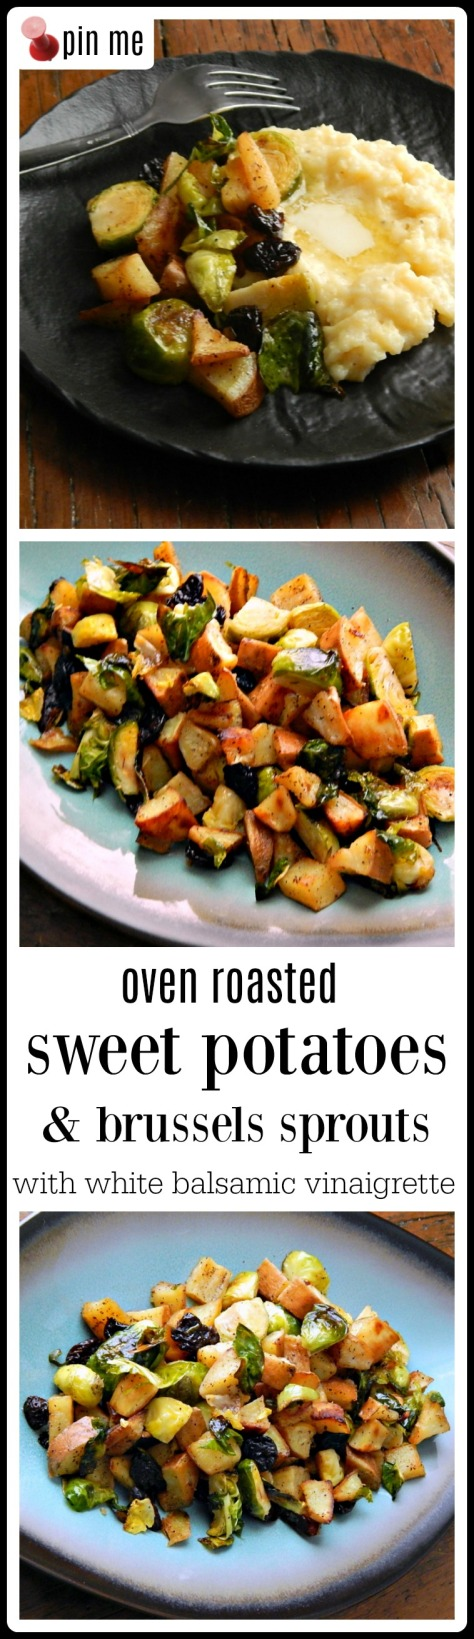 Oven Roasted Sweet Potatoes & Brussels Sprouts, roasted to perfection then tossed with a White Balsamic & Honey Vinaigrette